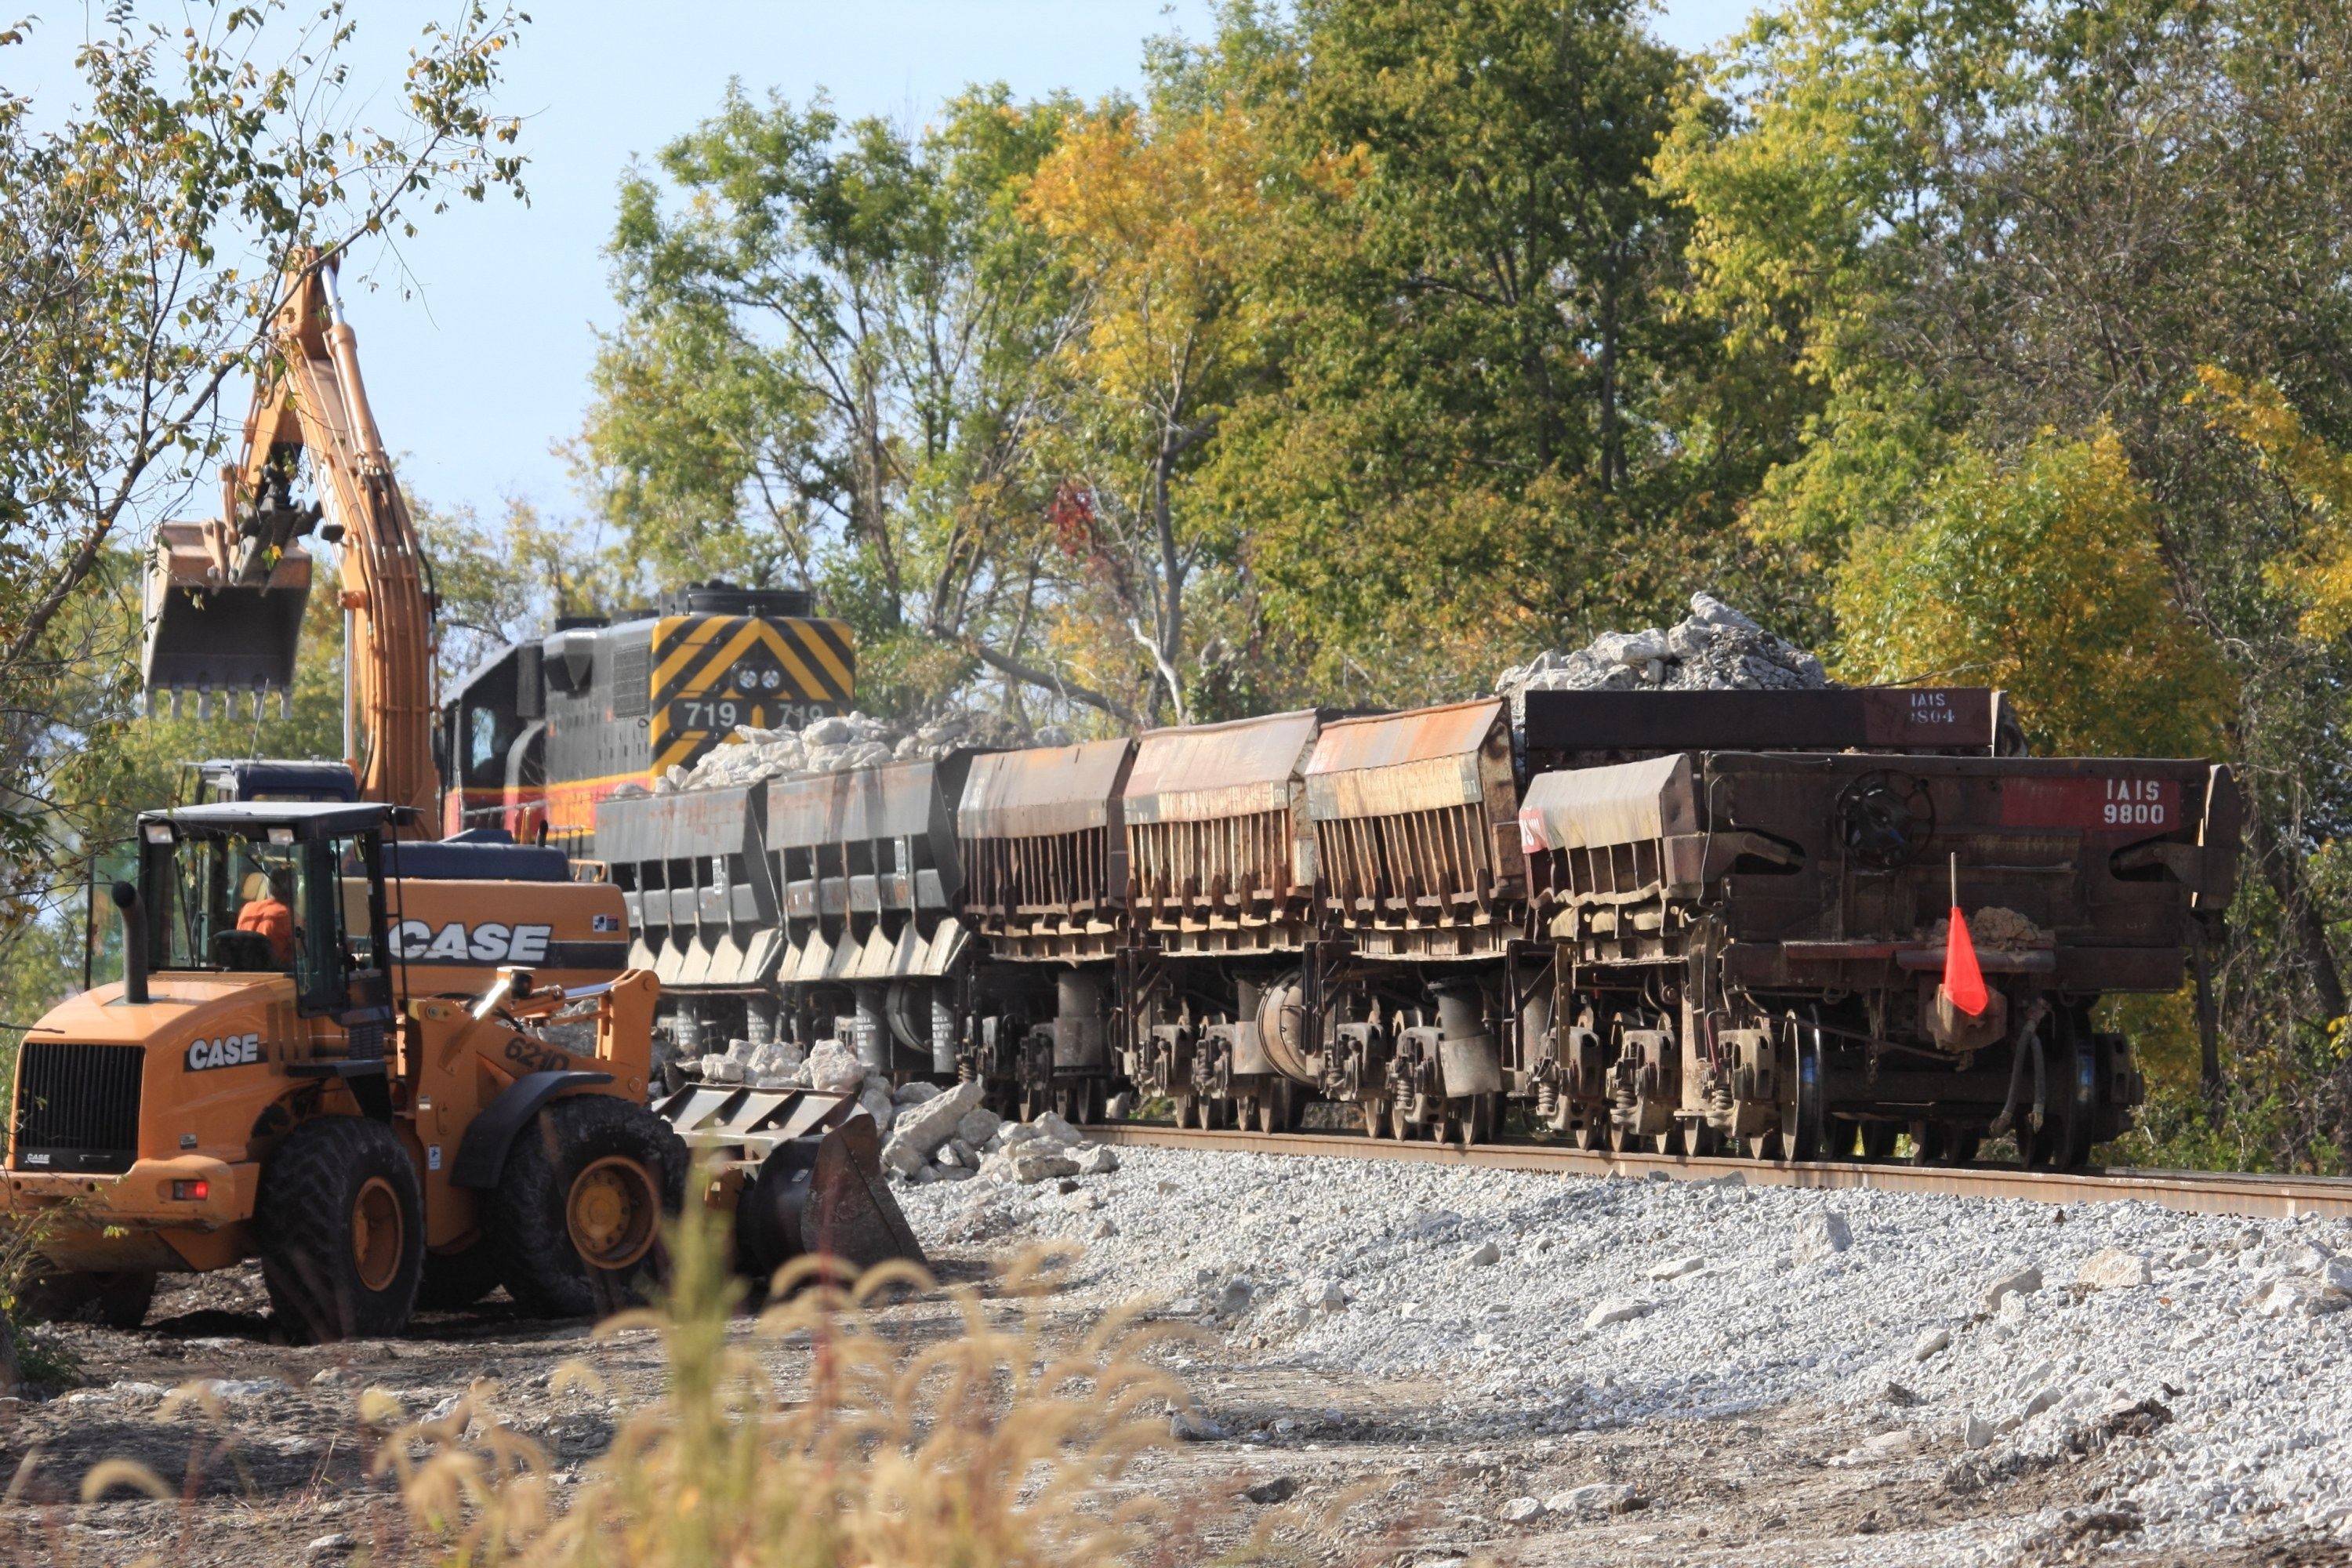 IAIS 719 and work train back out on the main and loading rock near the Wendling Quarry.